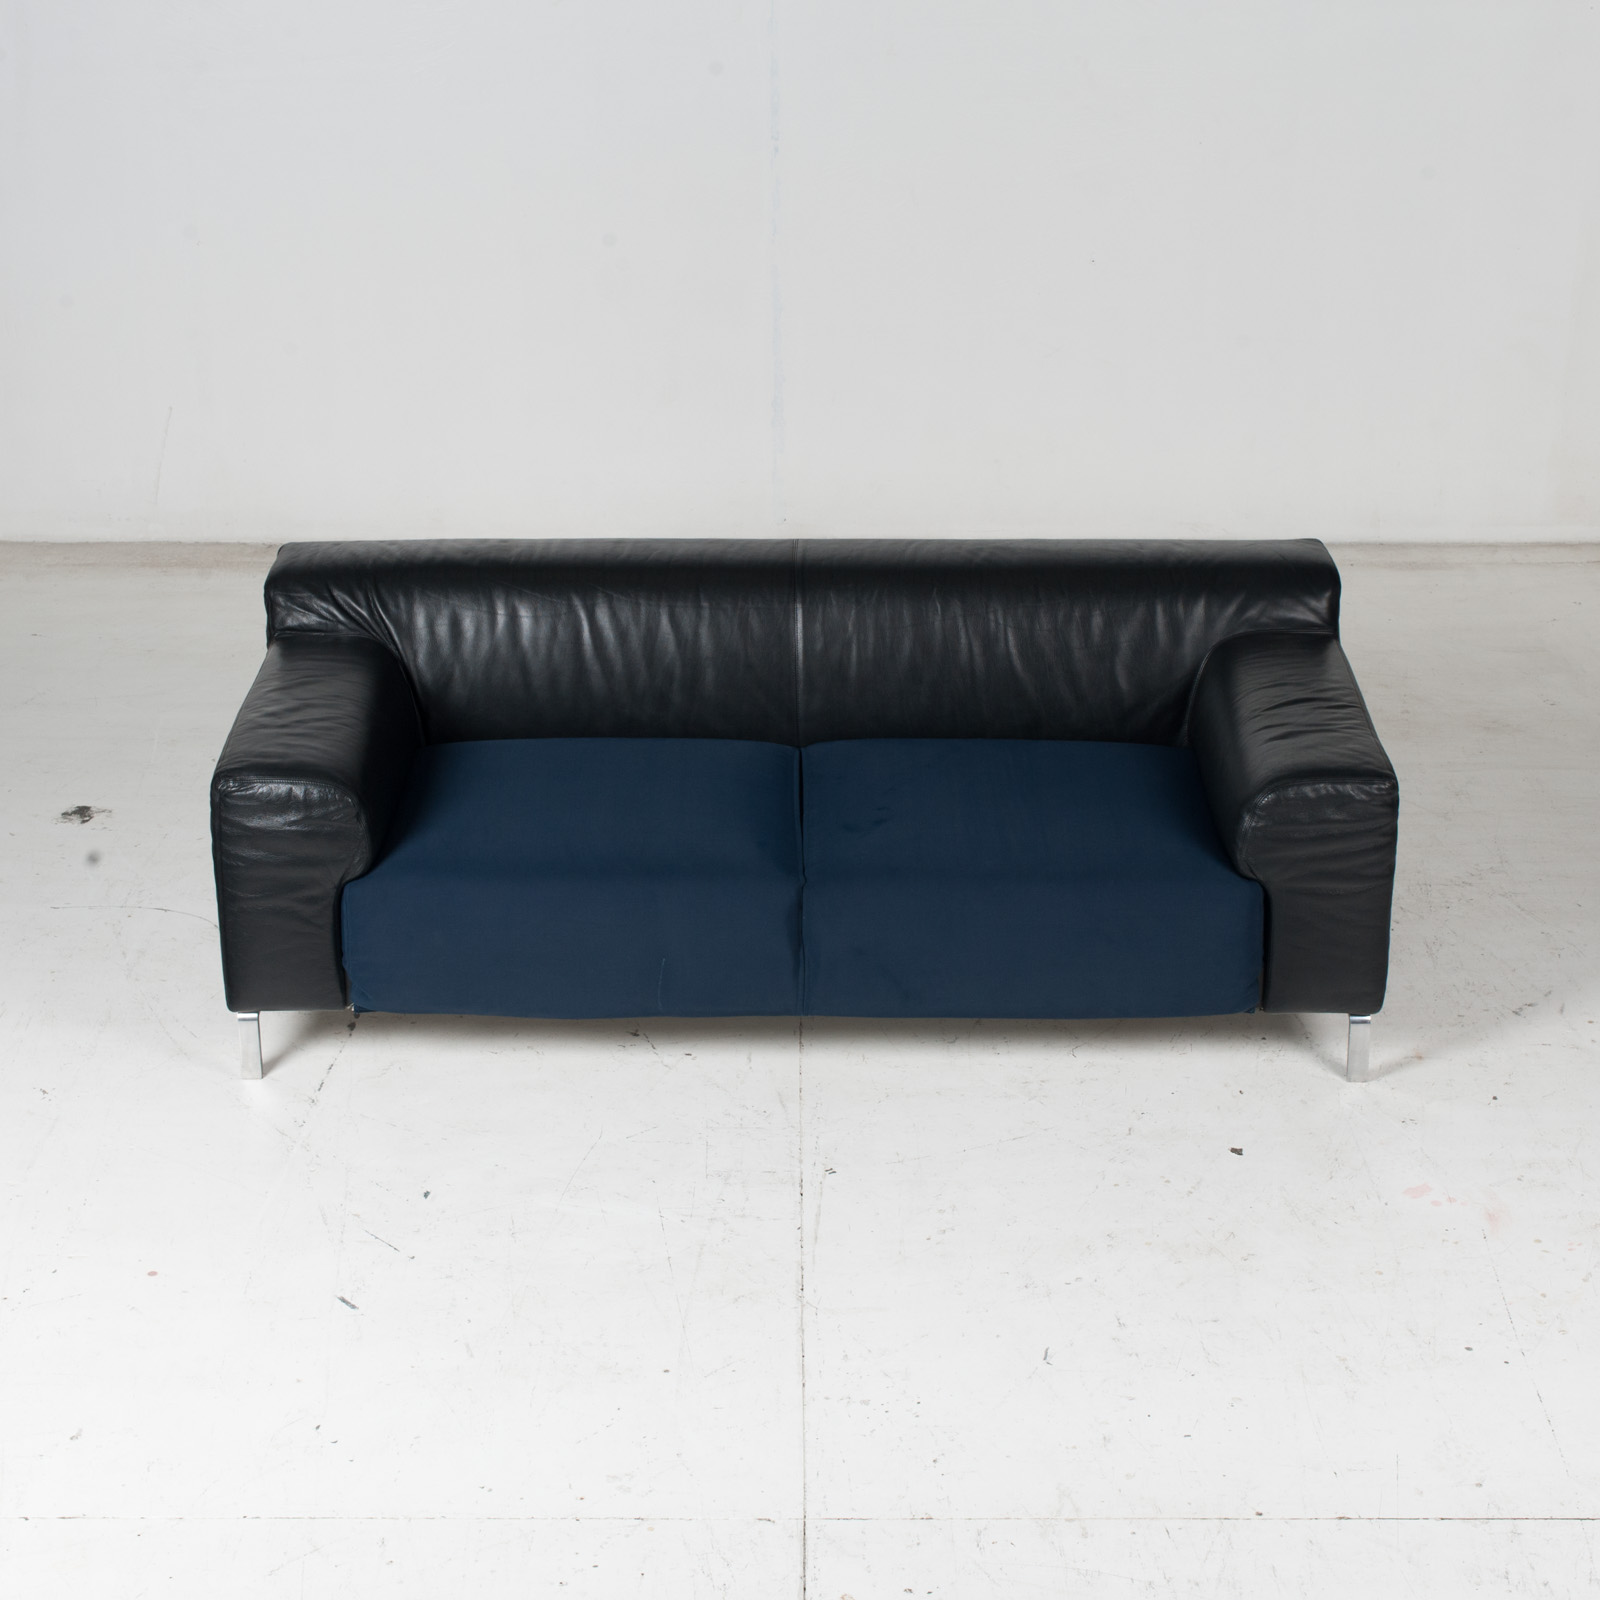 Model Greg 2 Seat Sofa By E. Progetti With Back Upholstered In Black Leather And Seat In Blue Fabric With Chrome Legs, 1960s, Italy 3